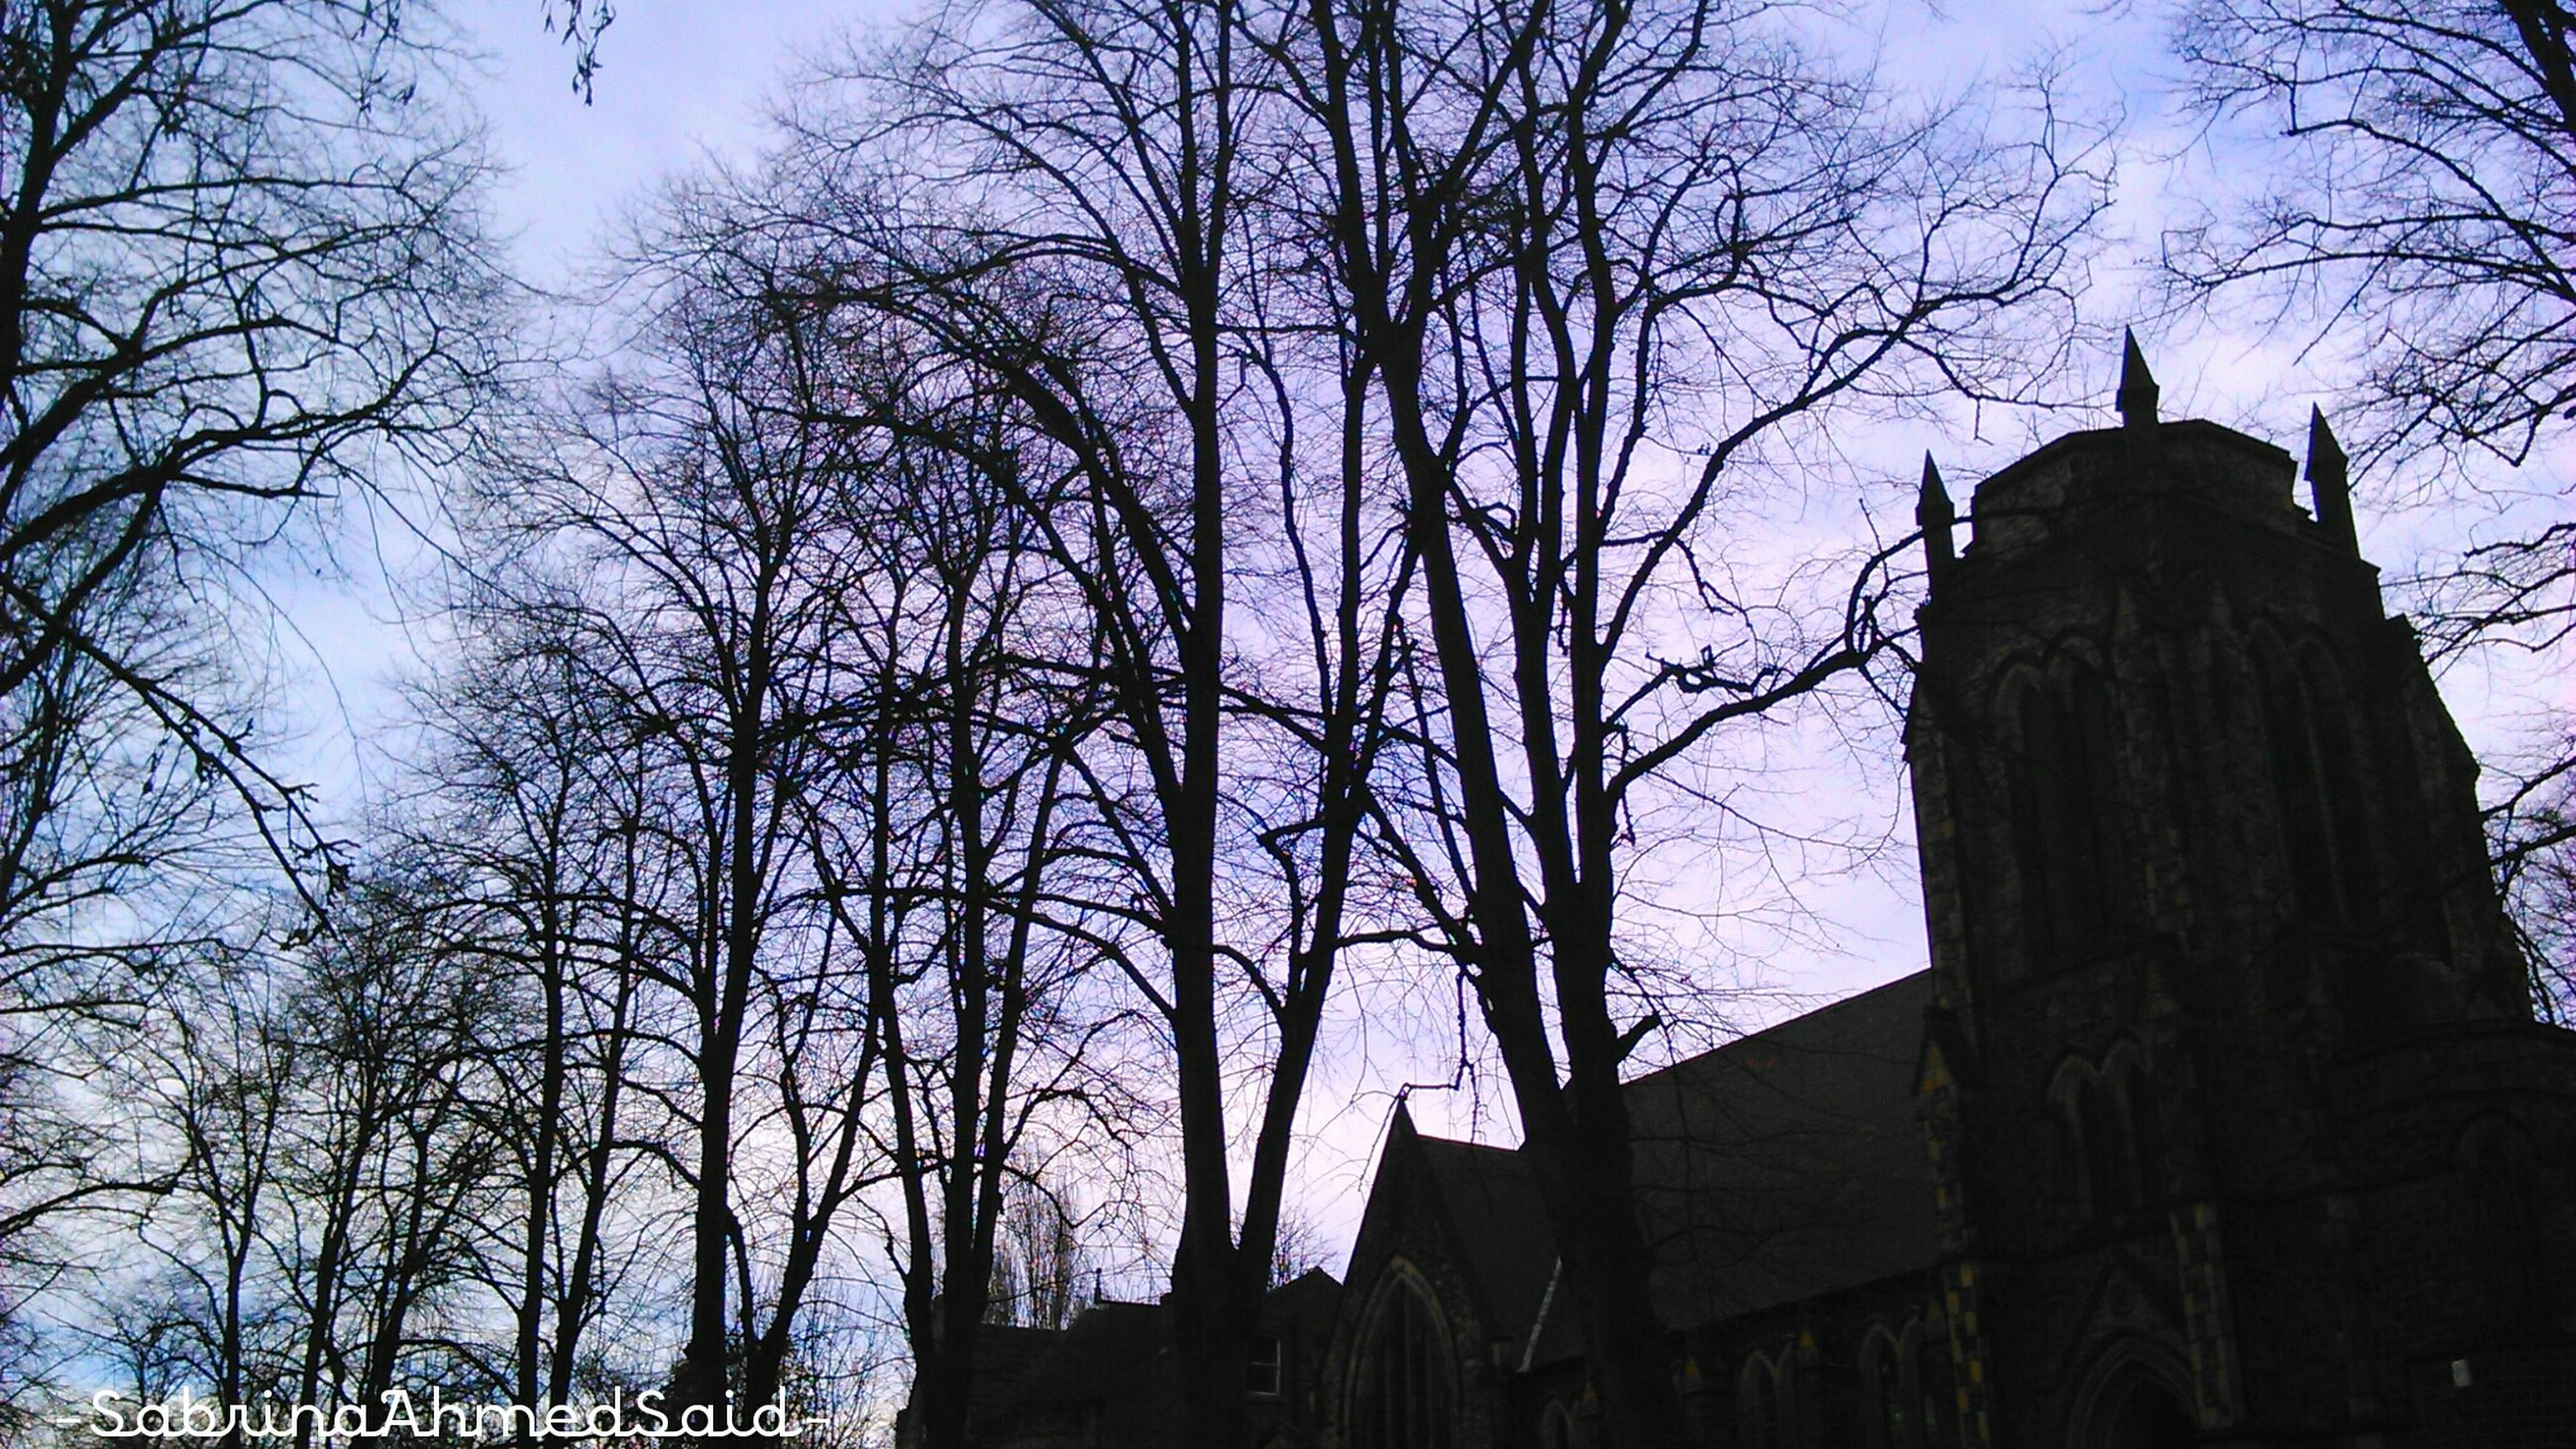 bare tree, tree, architecture, built structure, building exterior, silhouette, branch, low angle view, sky, tower, clear sky, tall - high, tree trunk, religion, no people, outdoors, nature, place of worship, spirituality